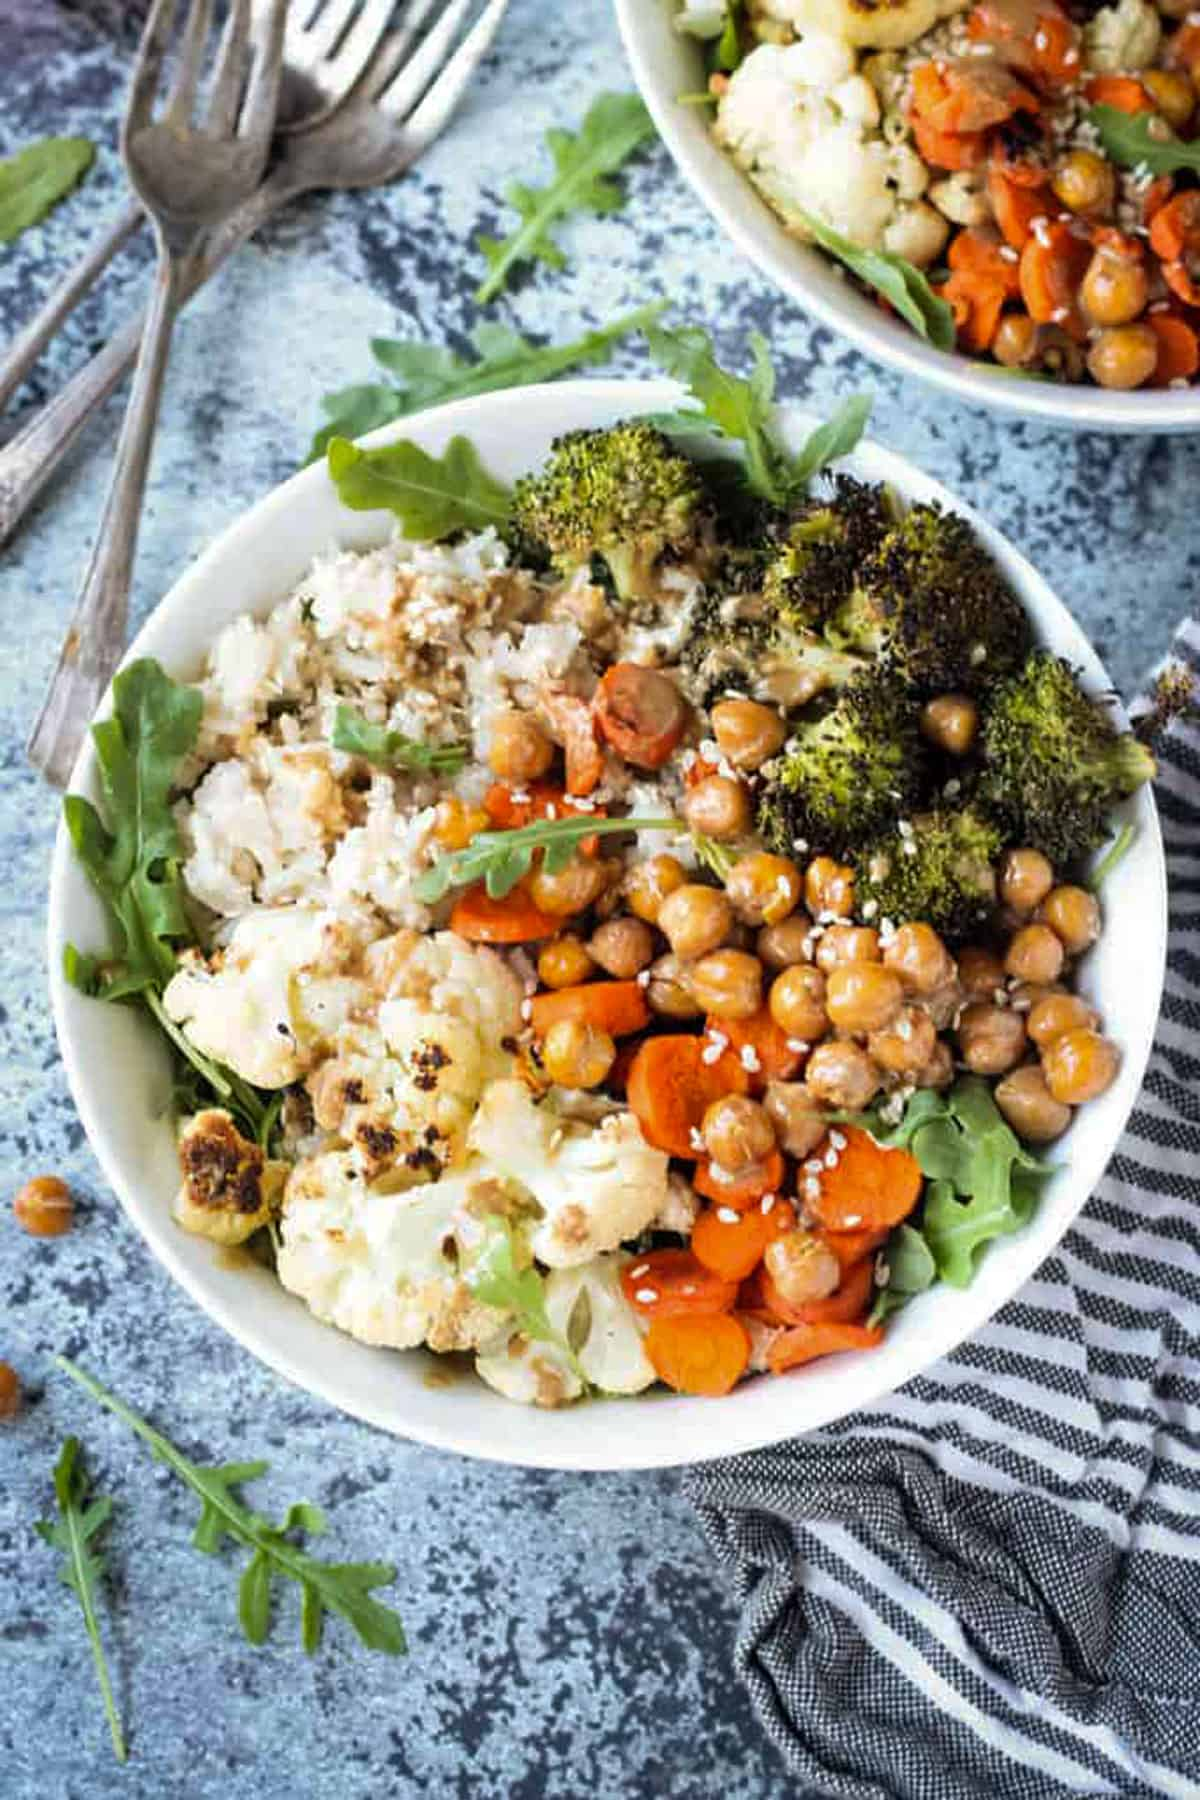 Bowl of rice, cauliflower, broccoli, carrots, and chickpeas topped with a sprinkle of sesame seeds.